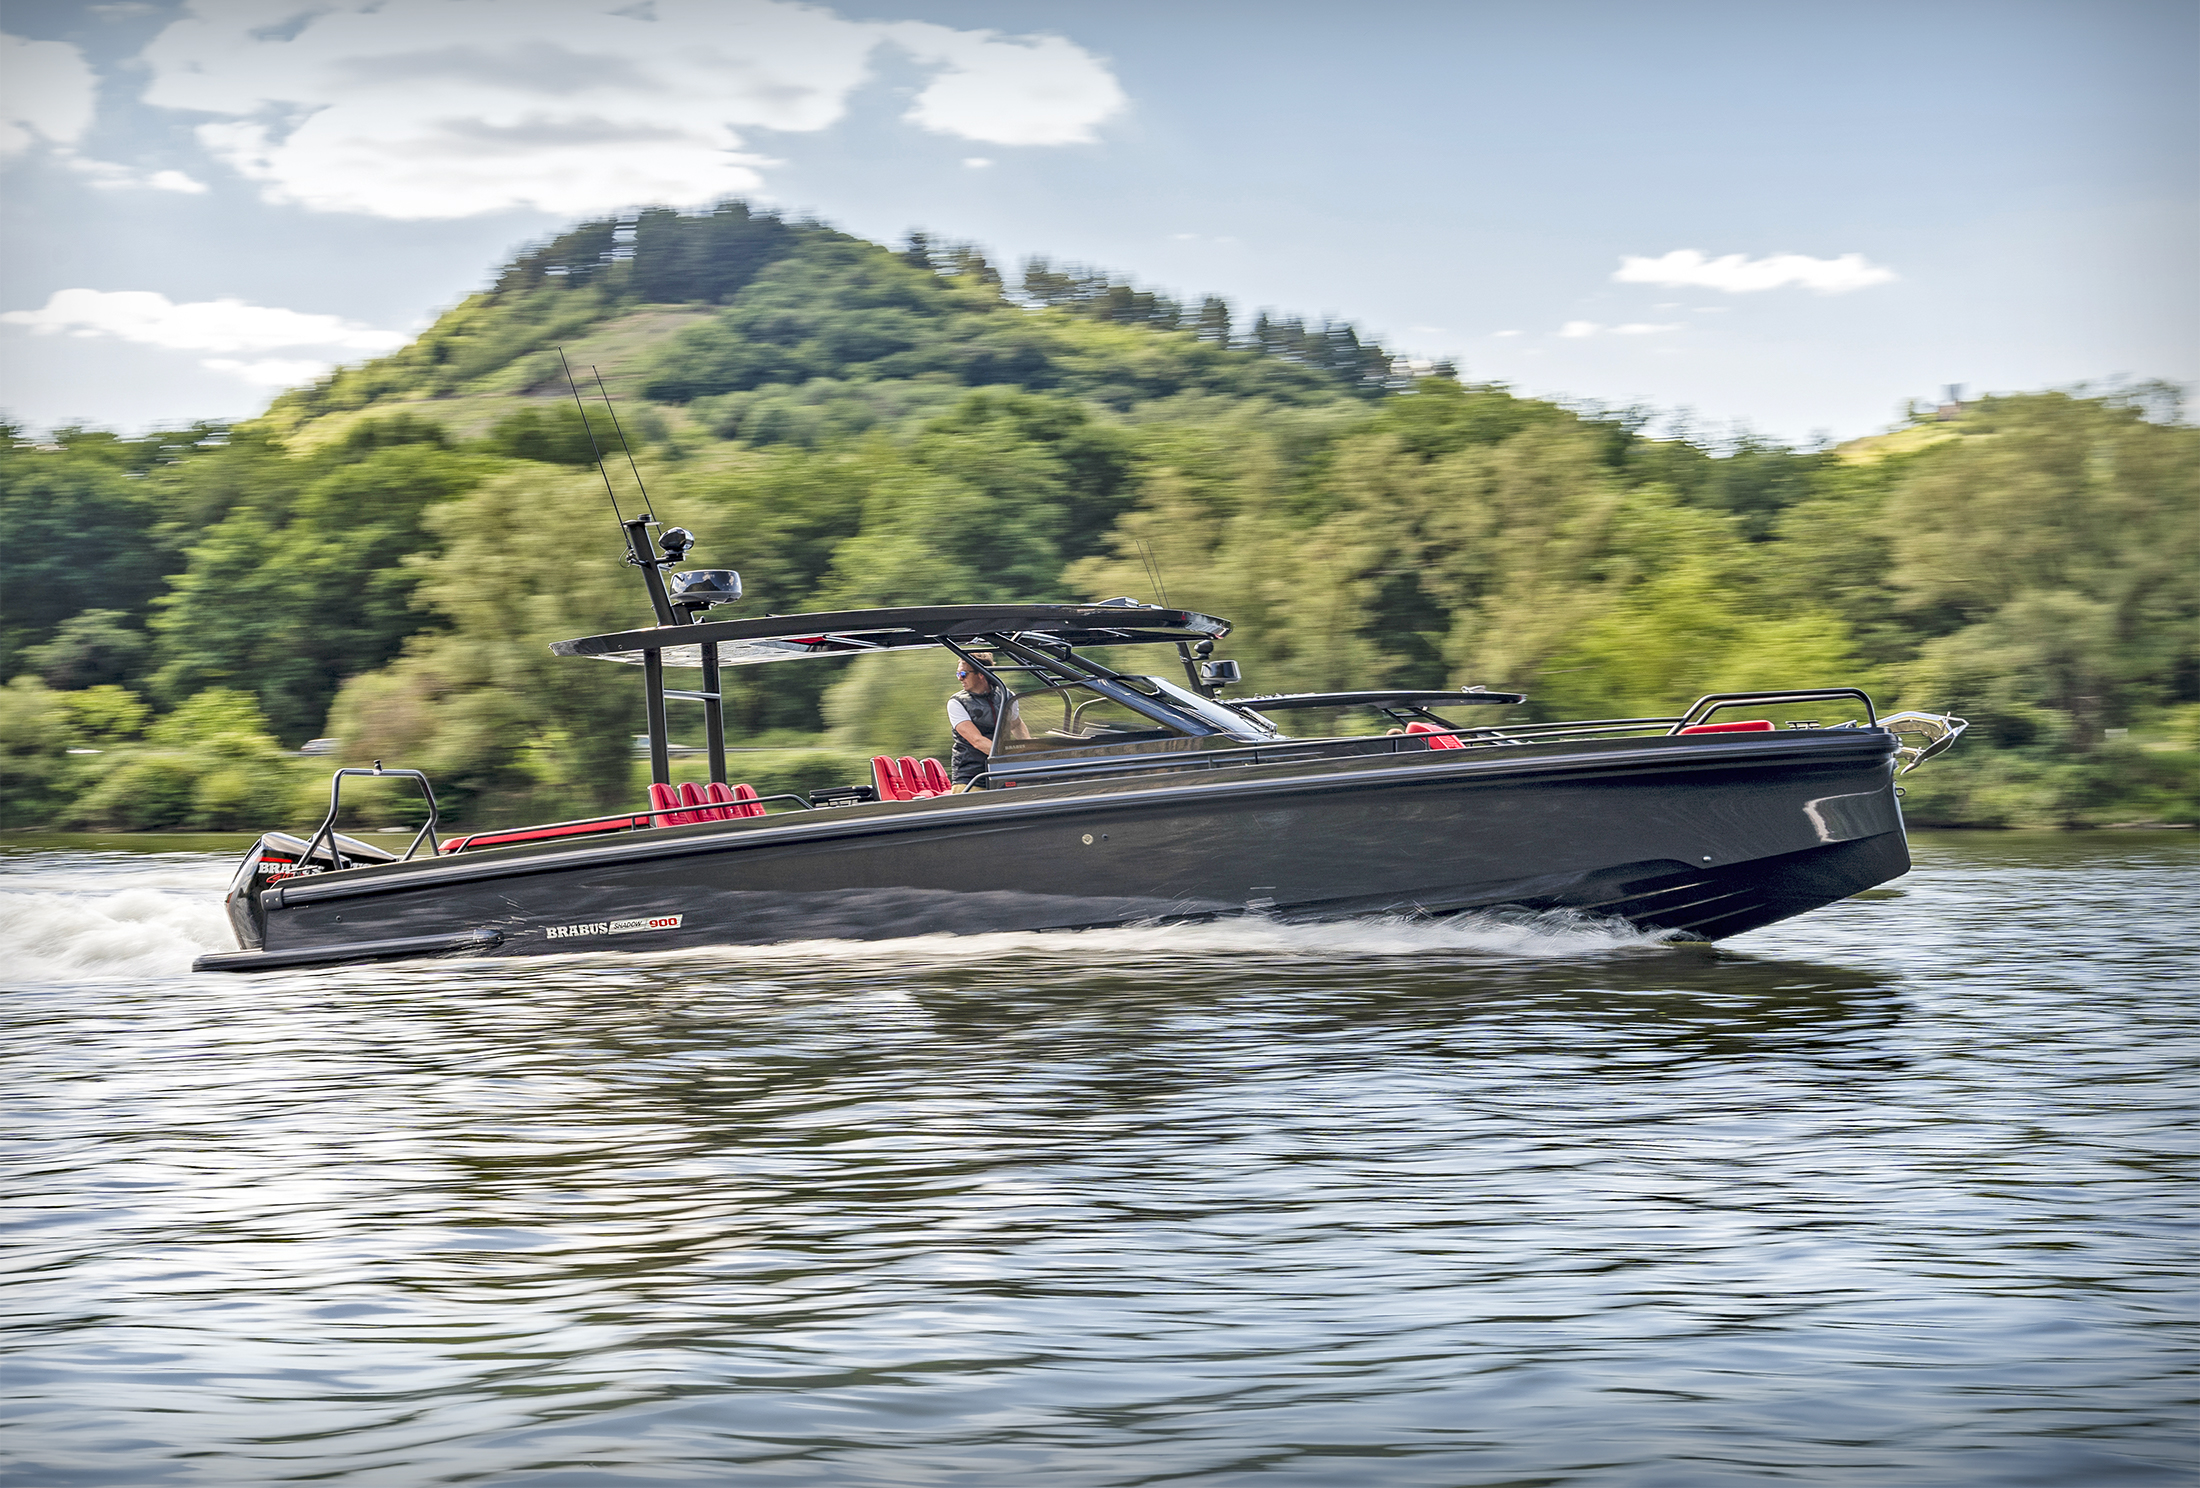 Brabus Shadow 900 Superboat by Axopar